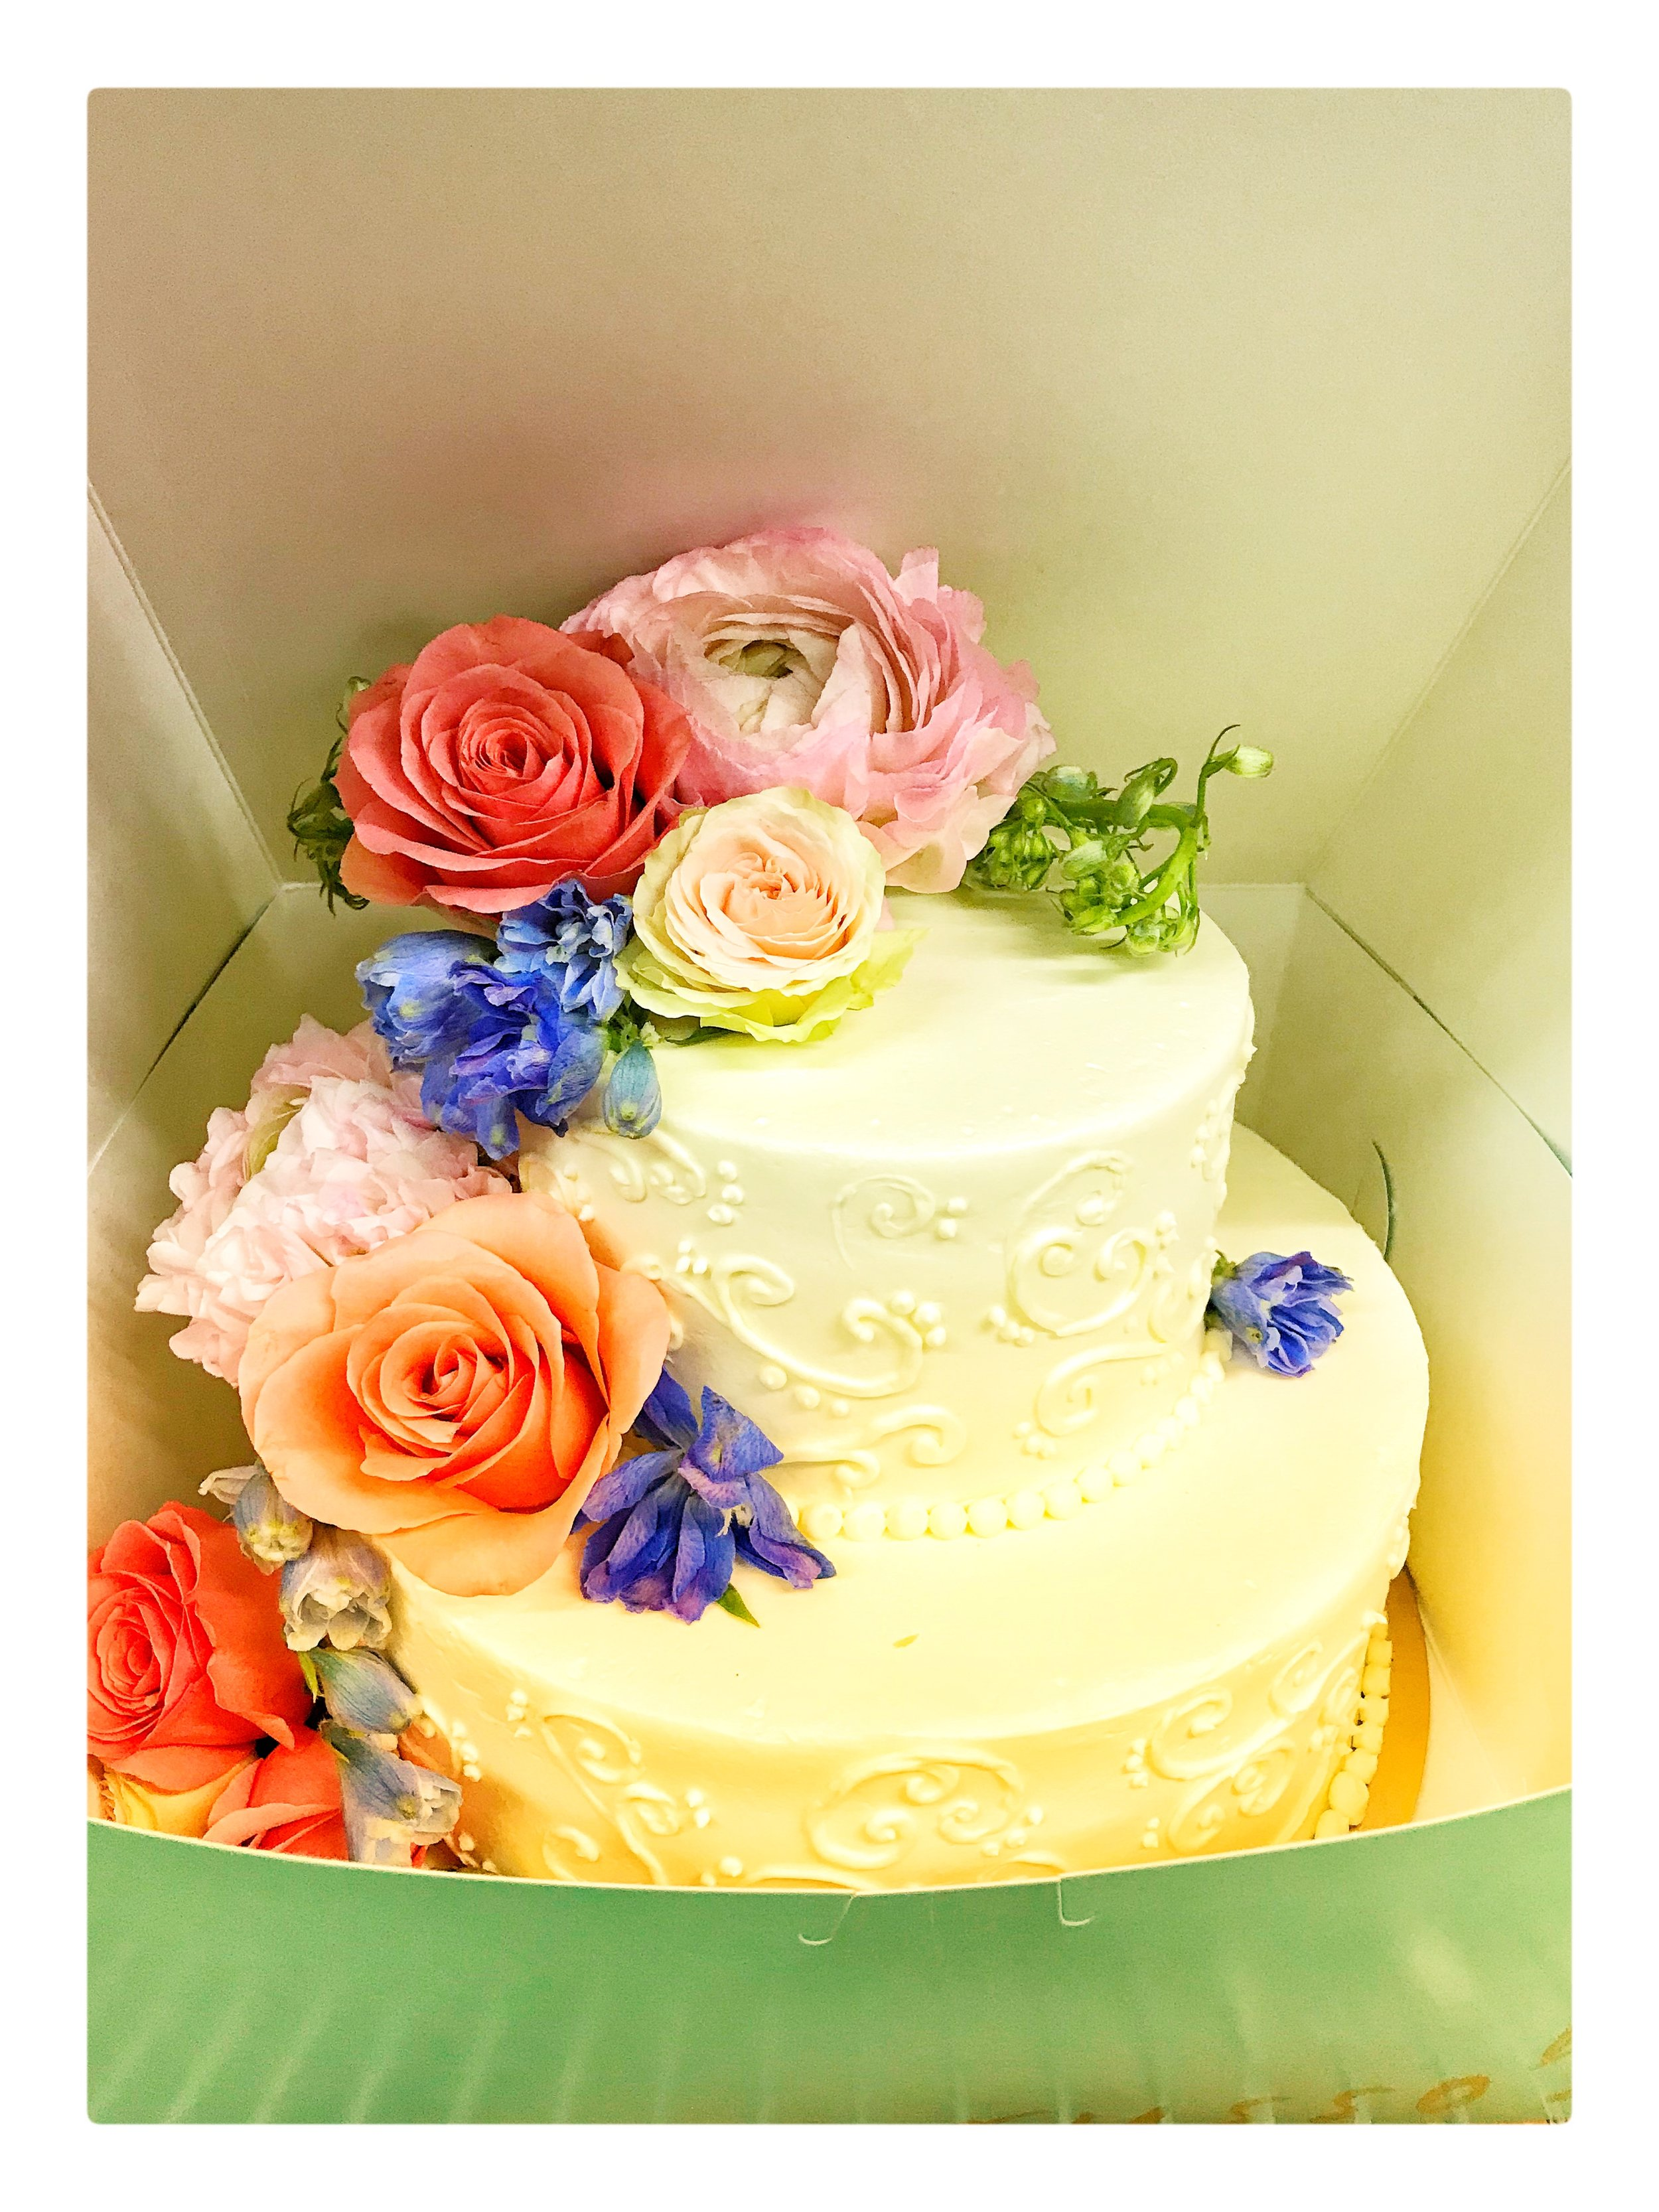 Cake decorated with fresh flowers for a special event in Boston.